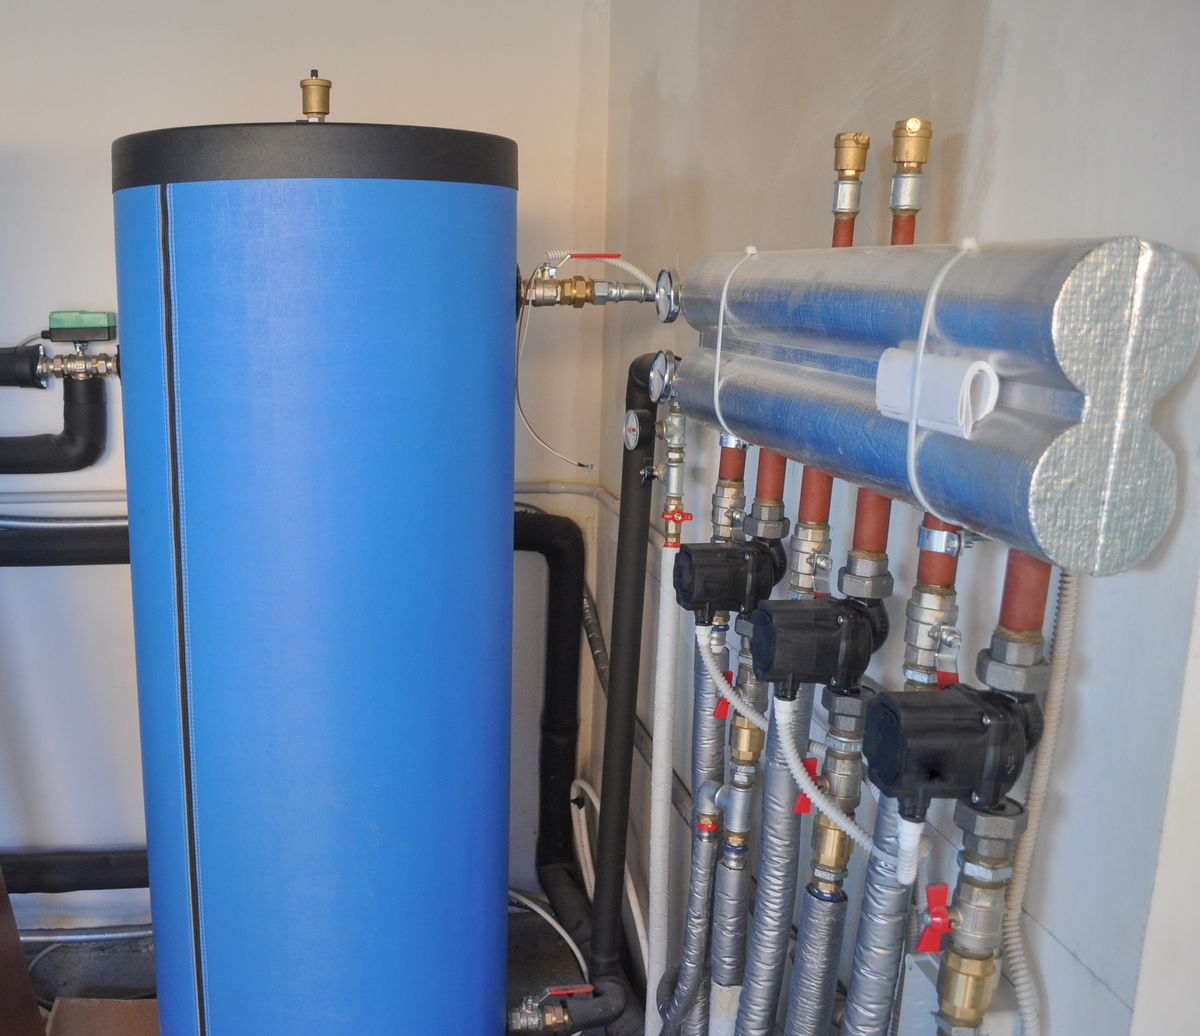 A blue geothermal heat pump in the interior of a home near silver pipes.